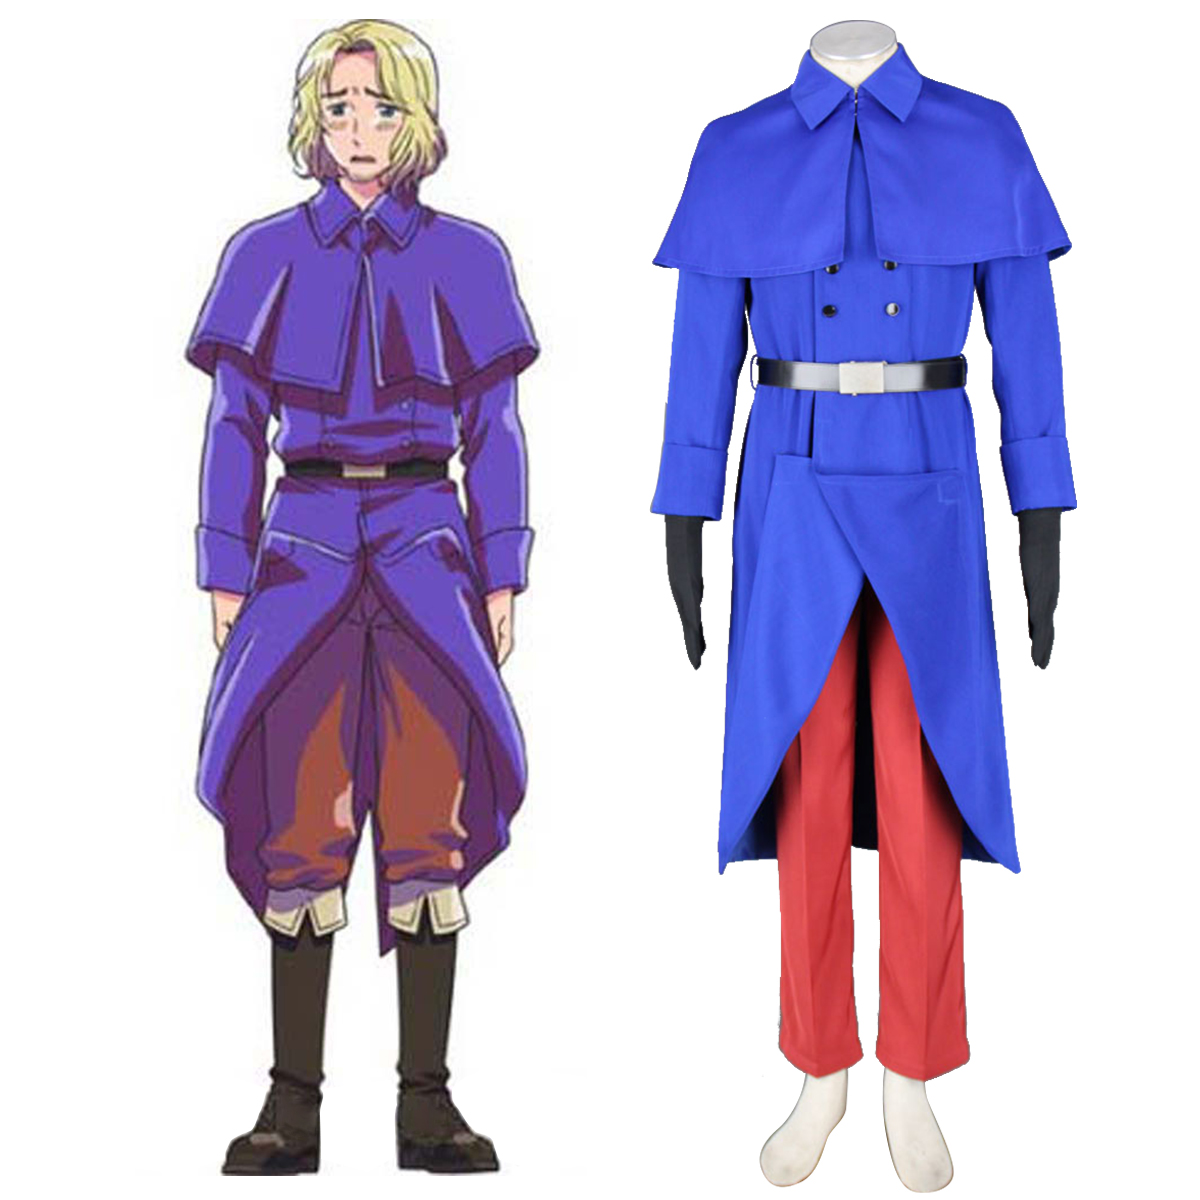 Axis Powers Hetalia France Francis Bonnefeuille 1 Anime Cosplay Costumes Outfit